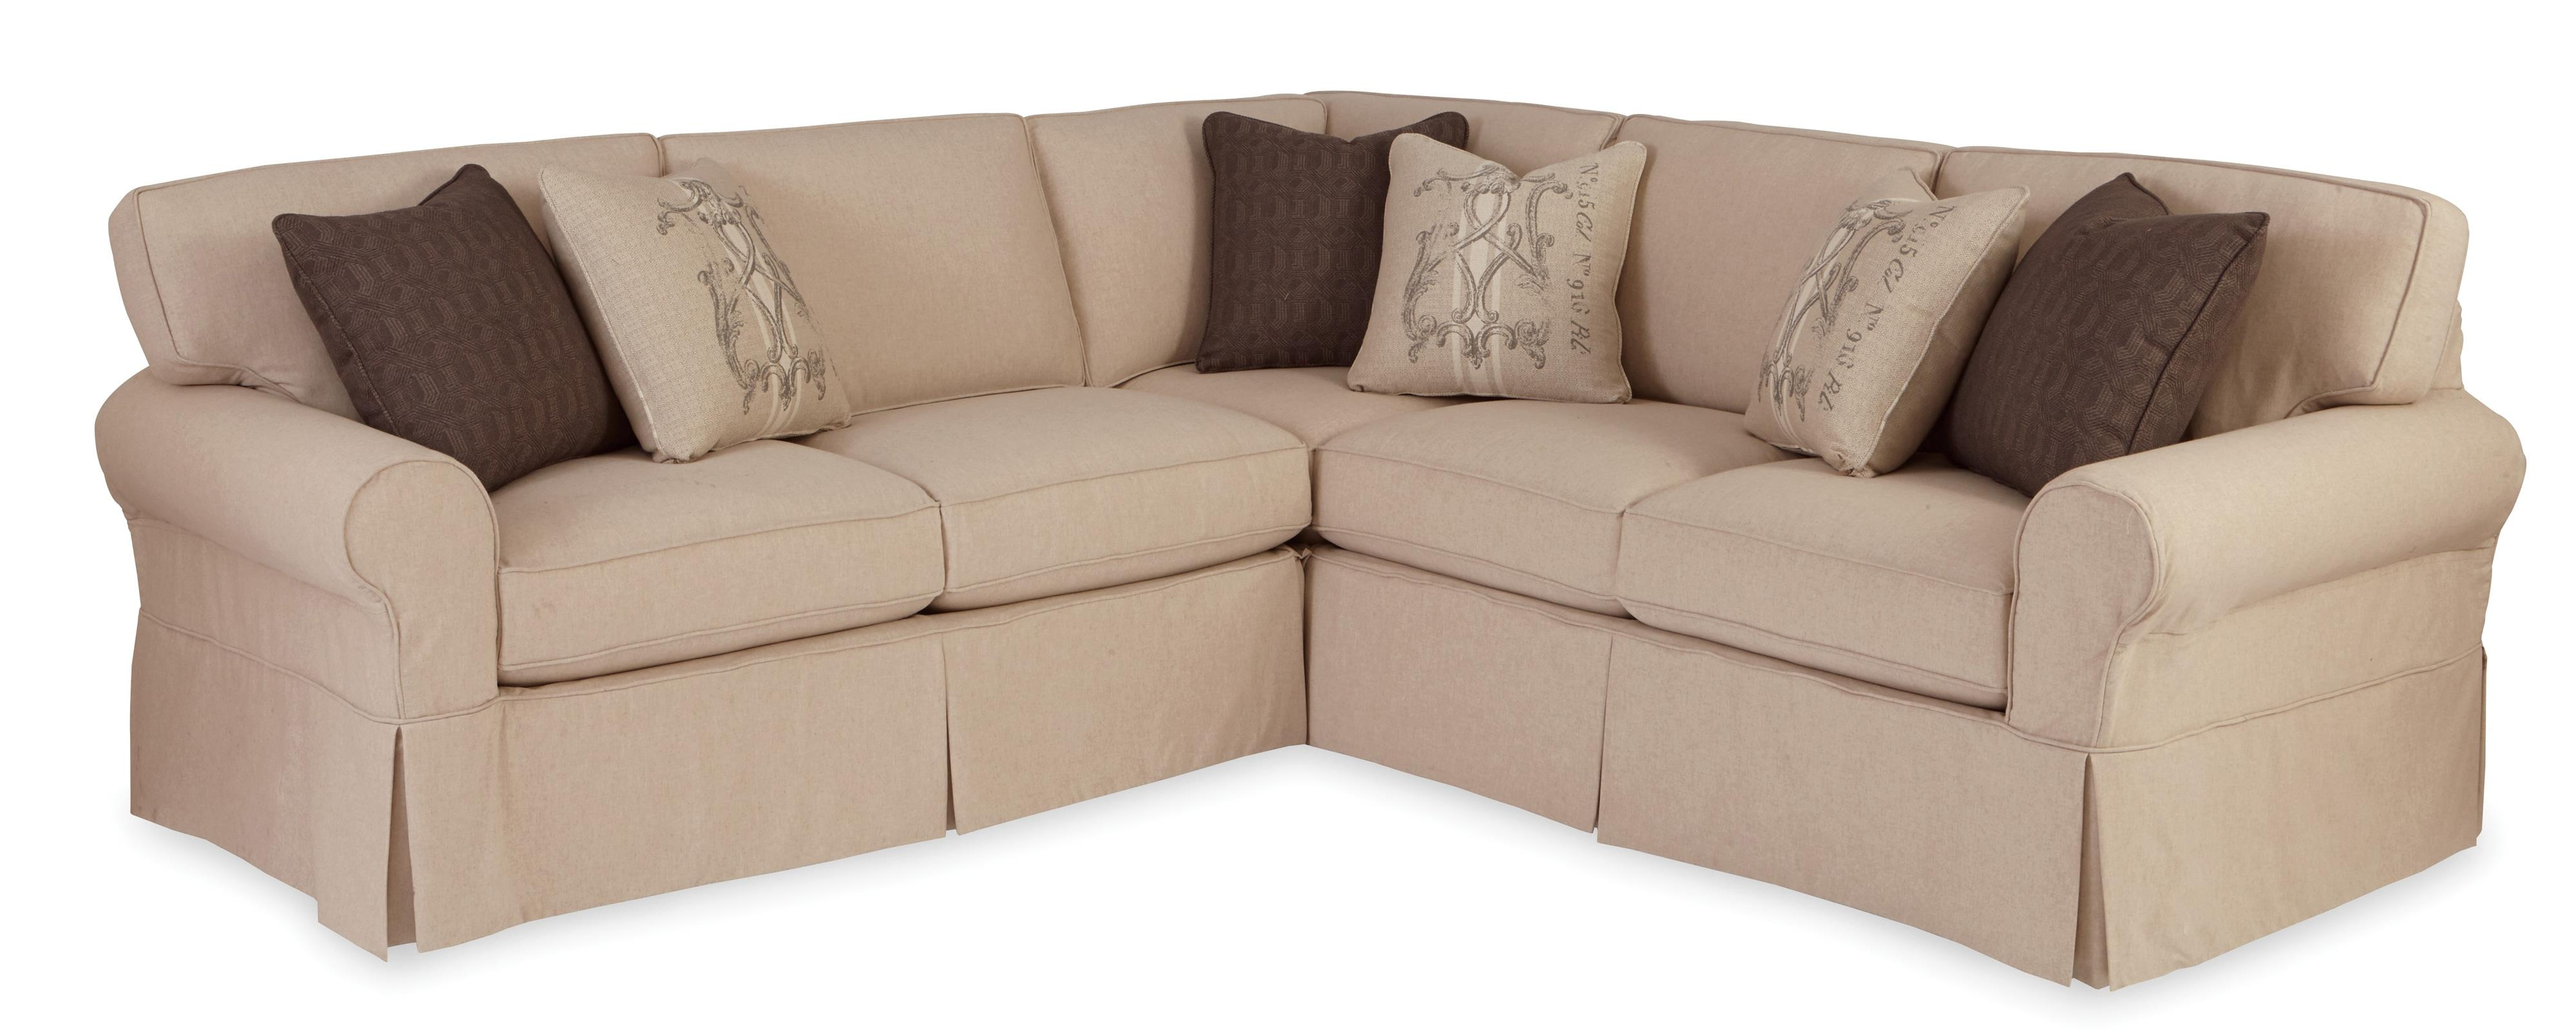 Two Piece Slipcovered Sectional Sofa With Raf Return Sofa Within Craftmaster Sectional Sofa (Image 15 of 15)